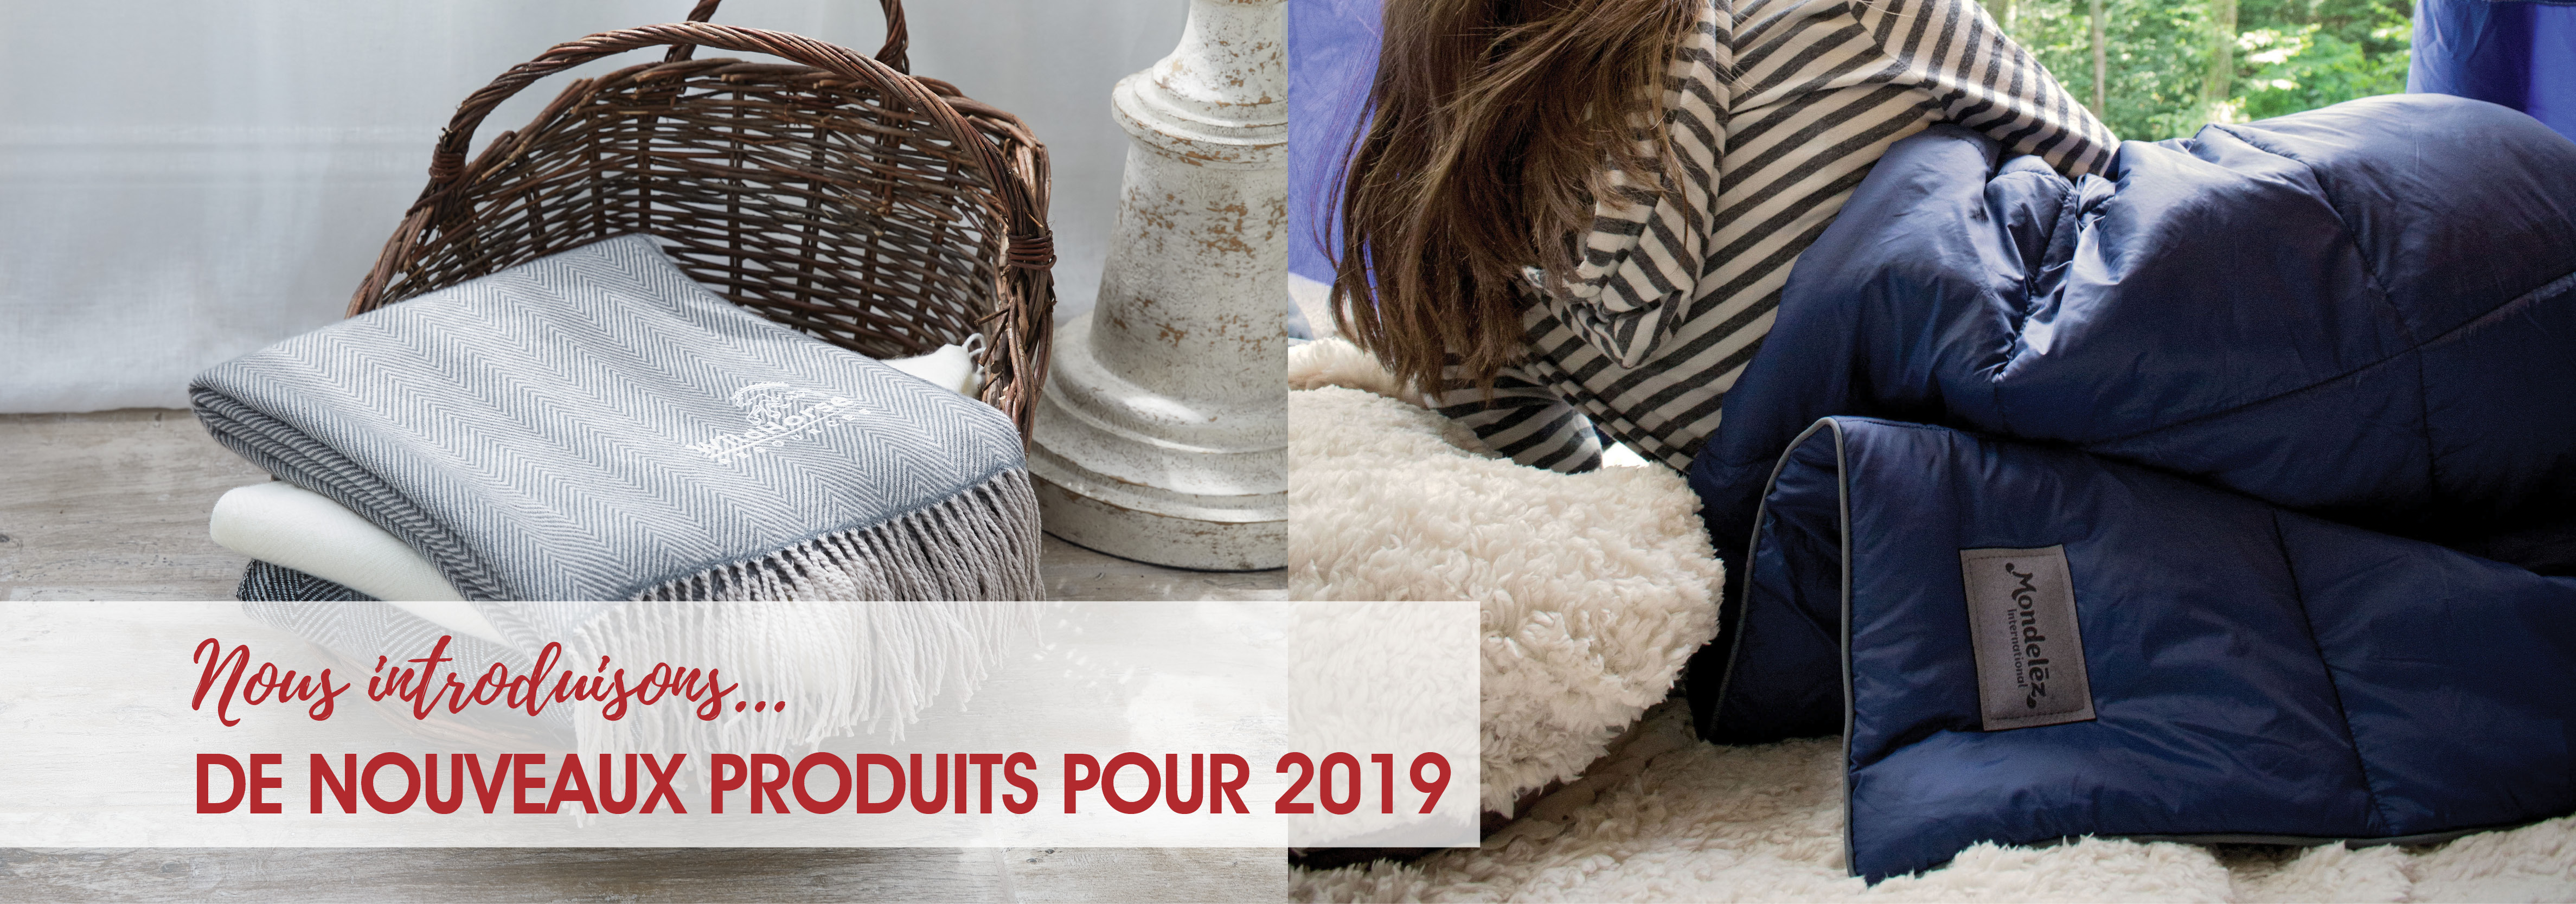 2019NewProducts-KP-French